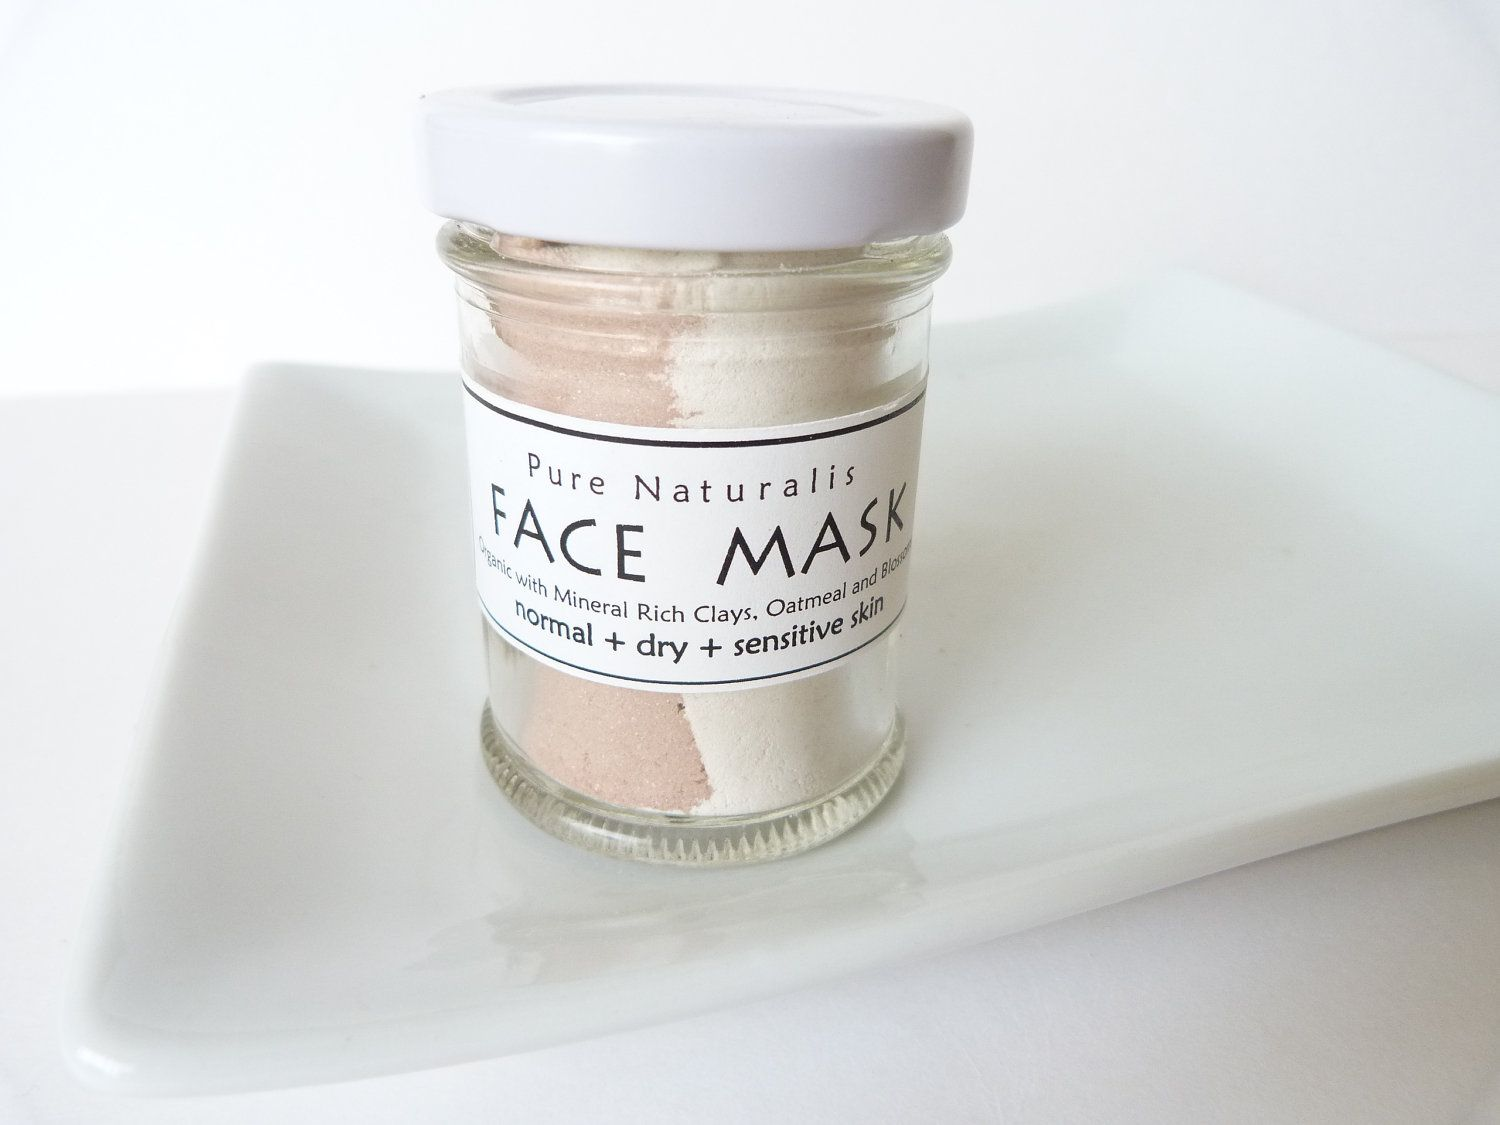 Face mask with organic botanicals and clays for normal to